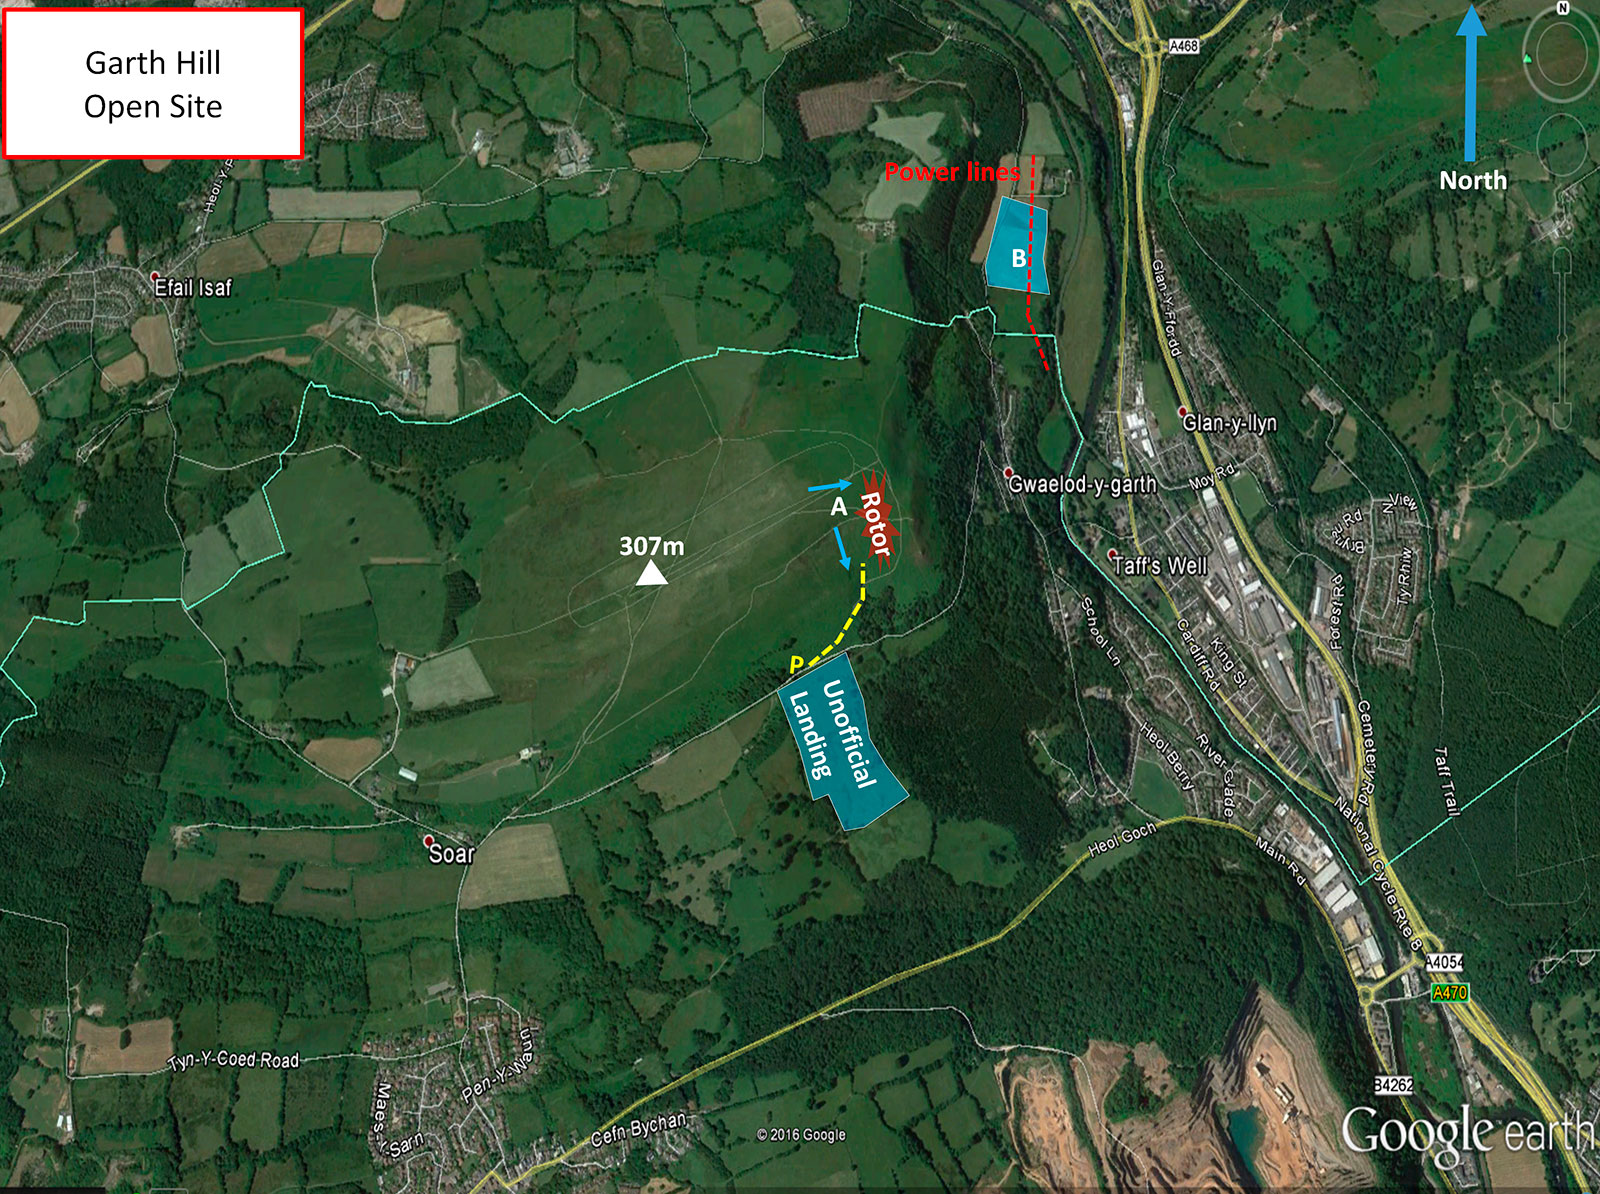 garth-hill-site-image-map